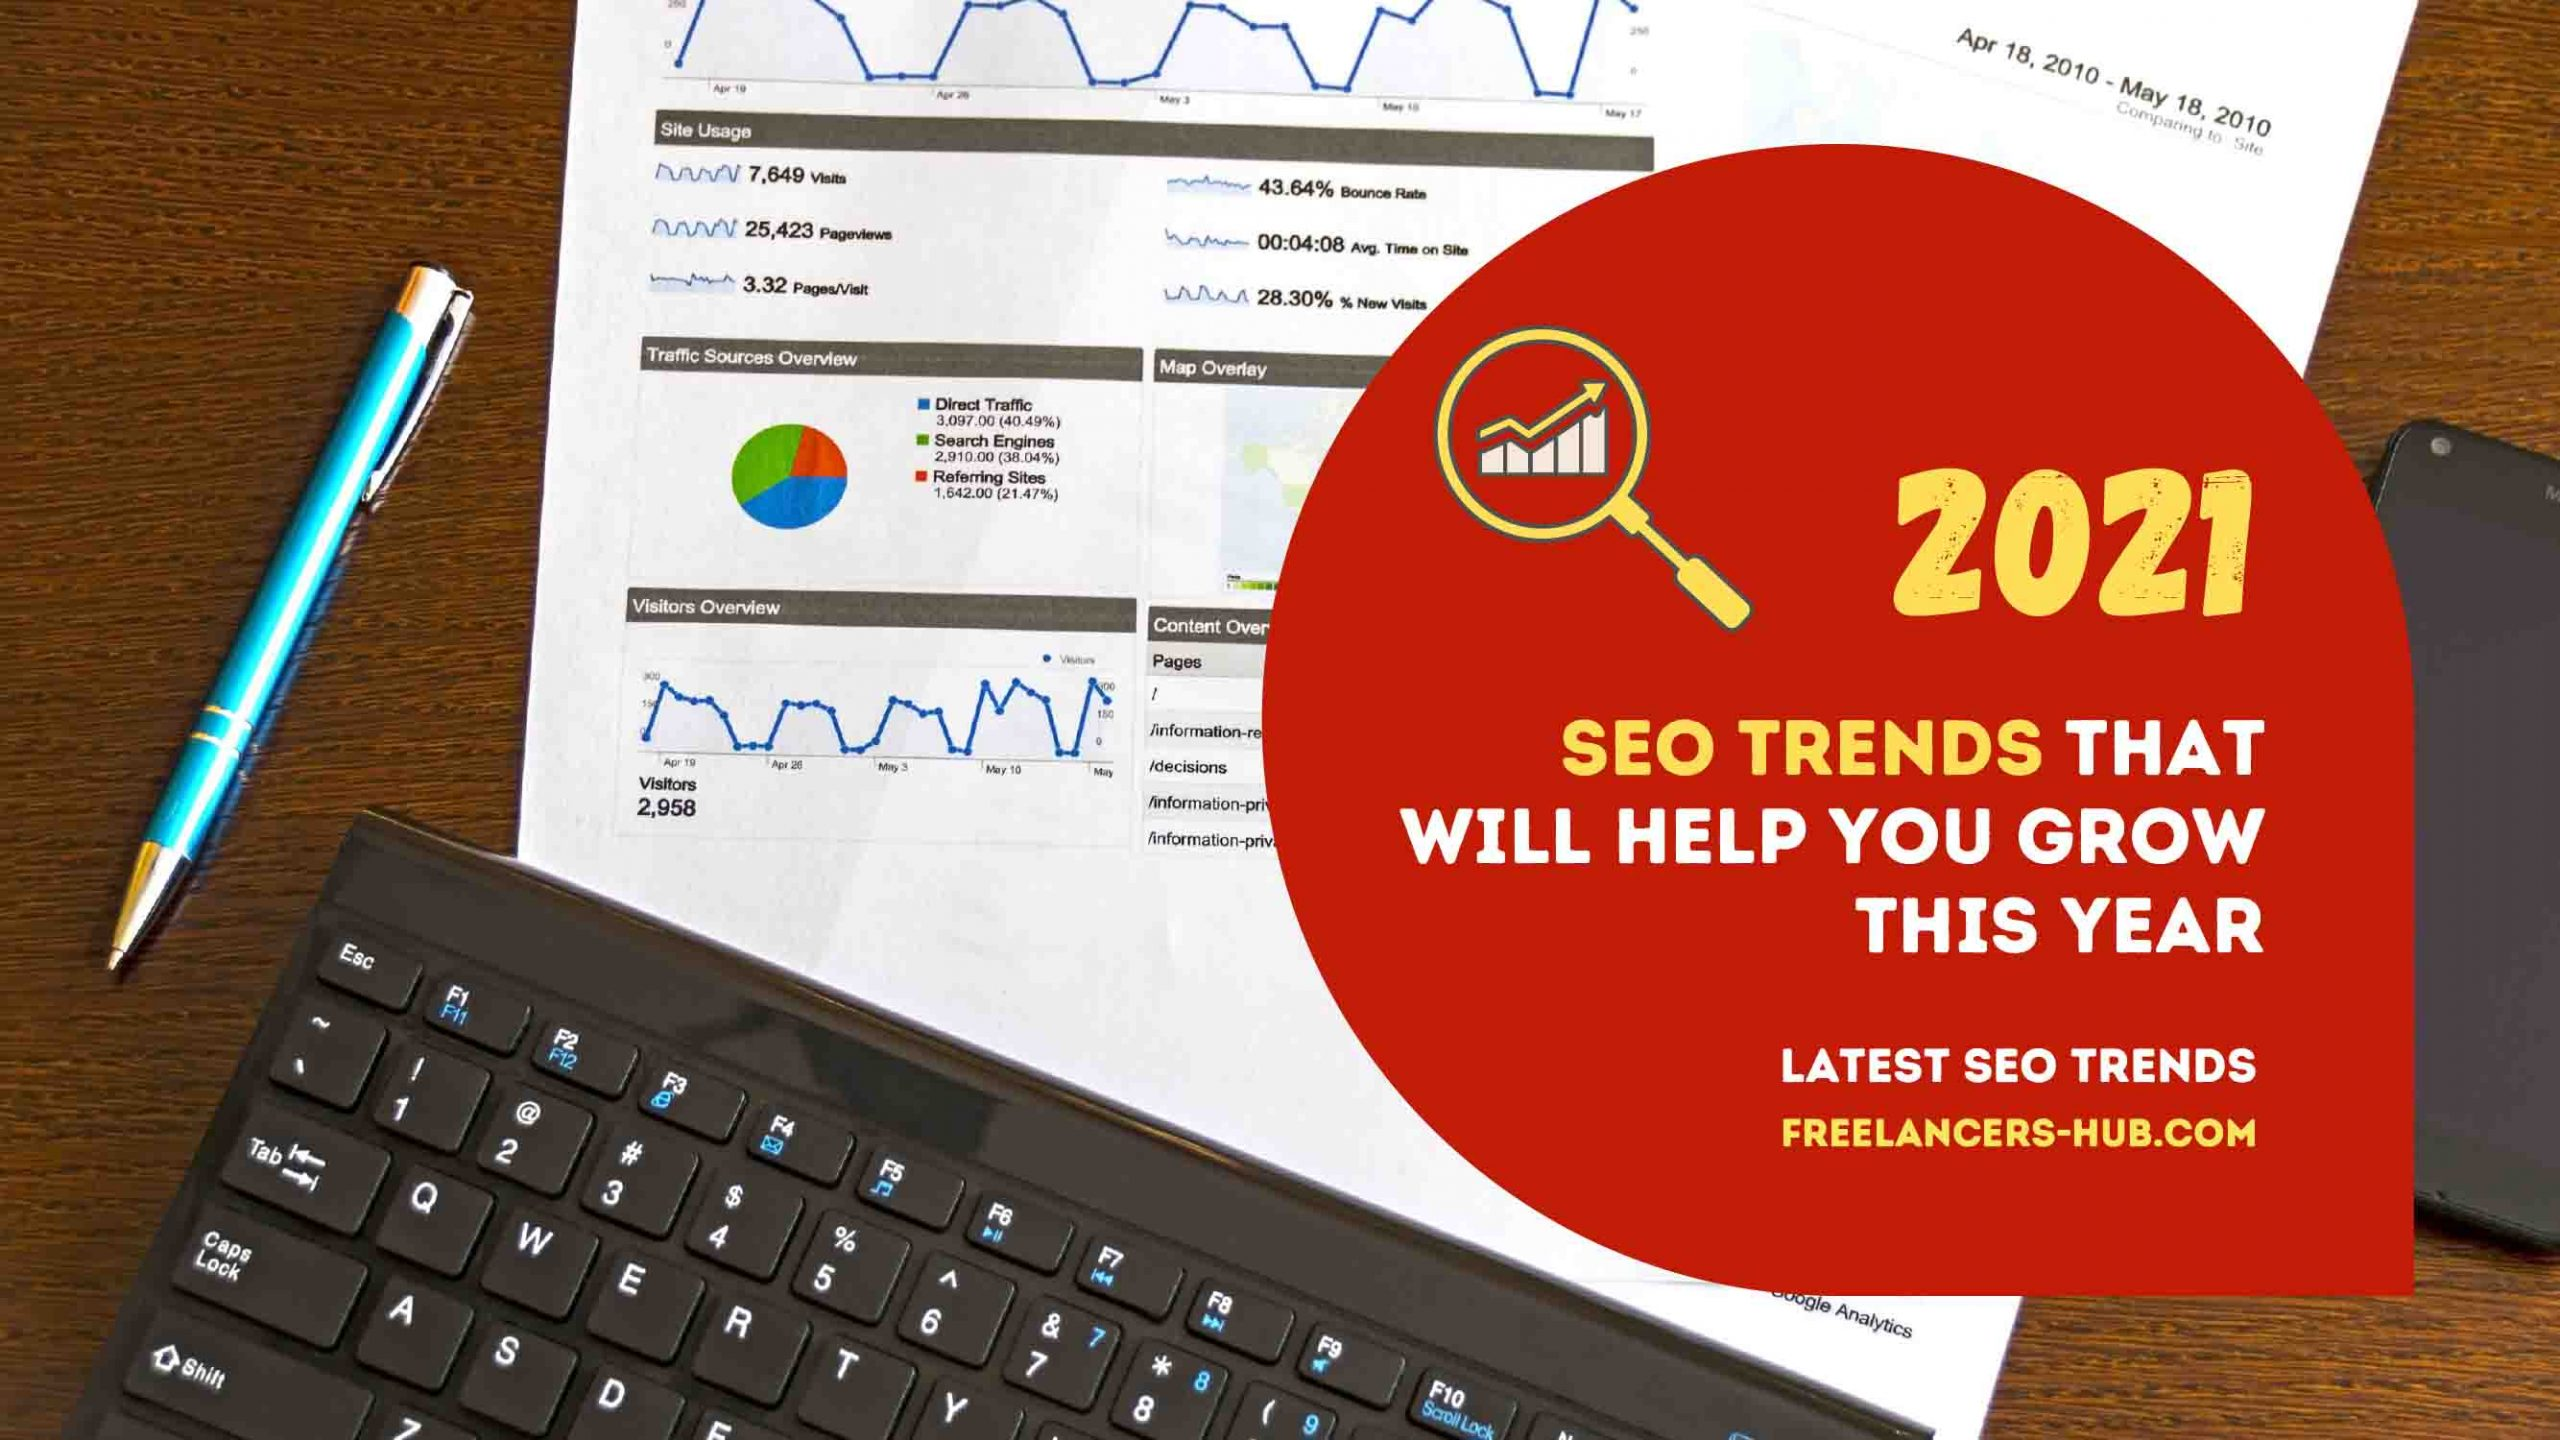 2021 SEO Trends That Will Help You Grow This Year - Freelancers Hub